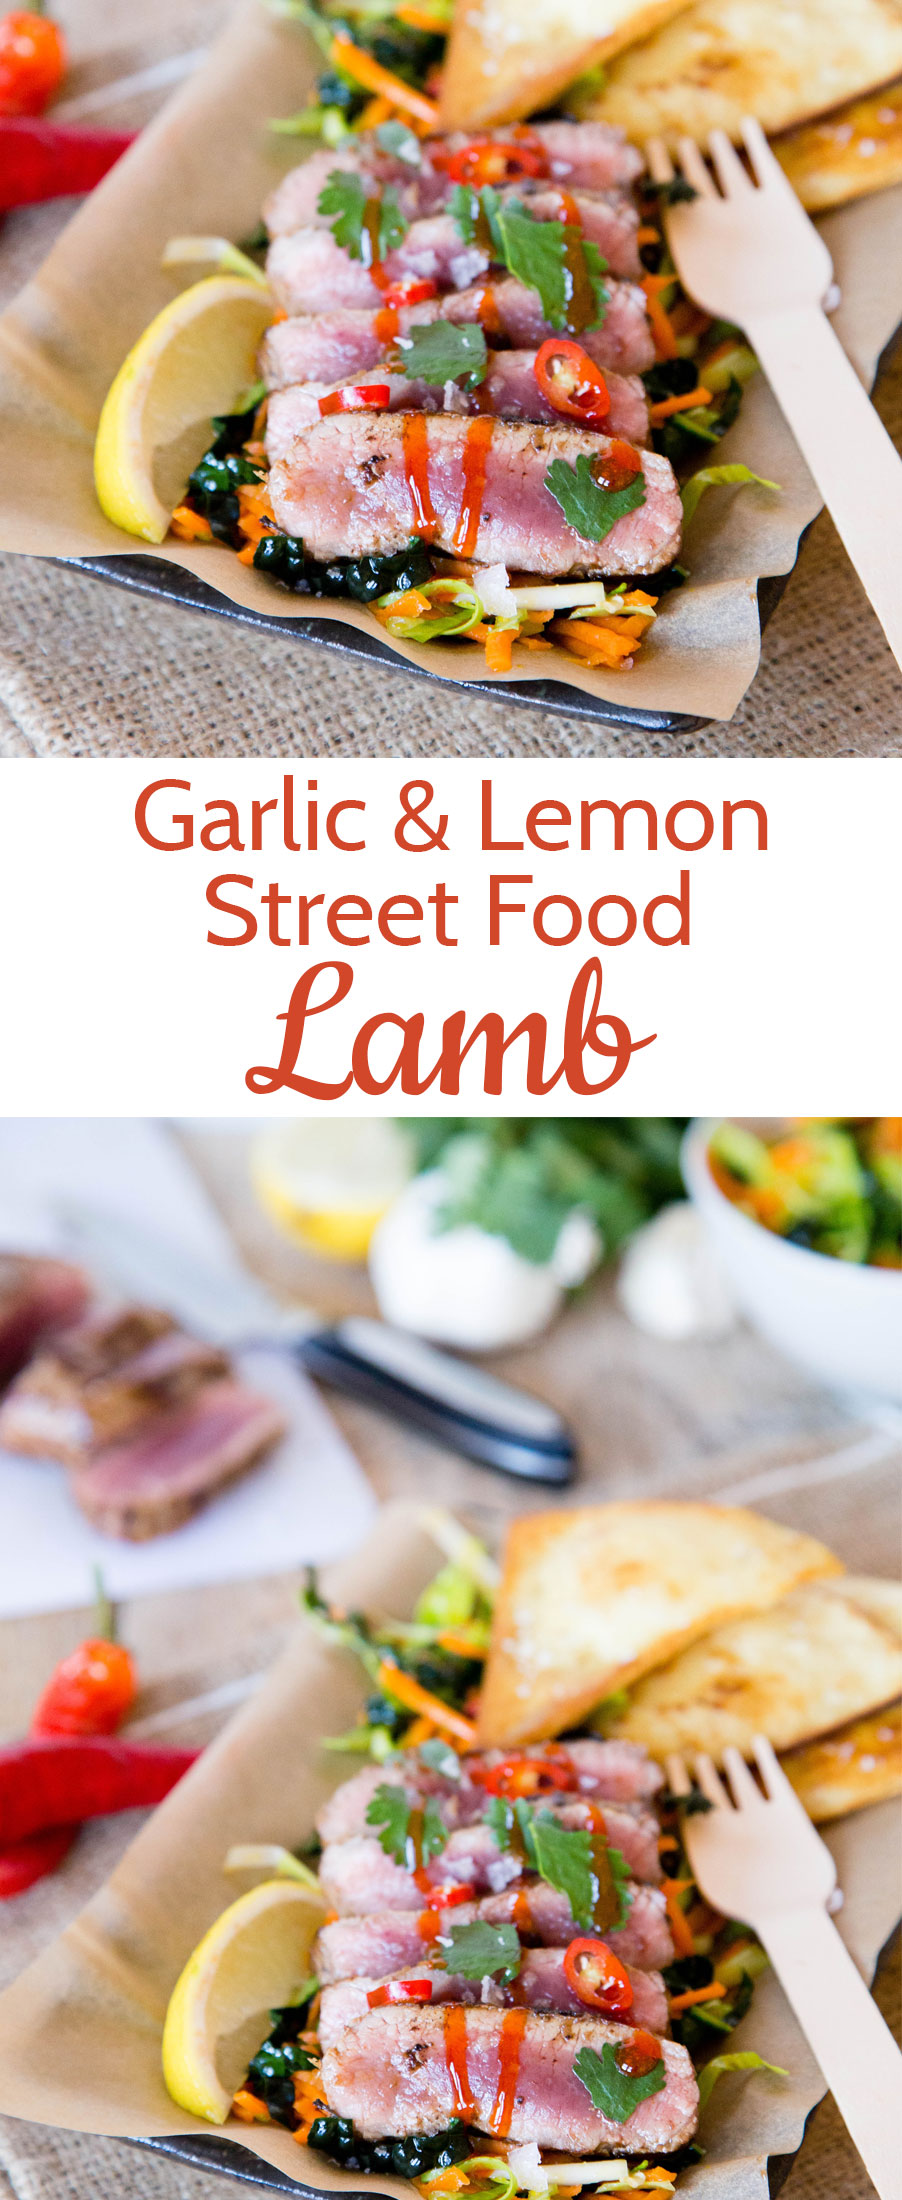 Street food is big on flavour and so popular. This easy recipe for lamb with garlic and lemon is so quick to cook, and meltingly tender.